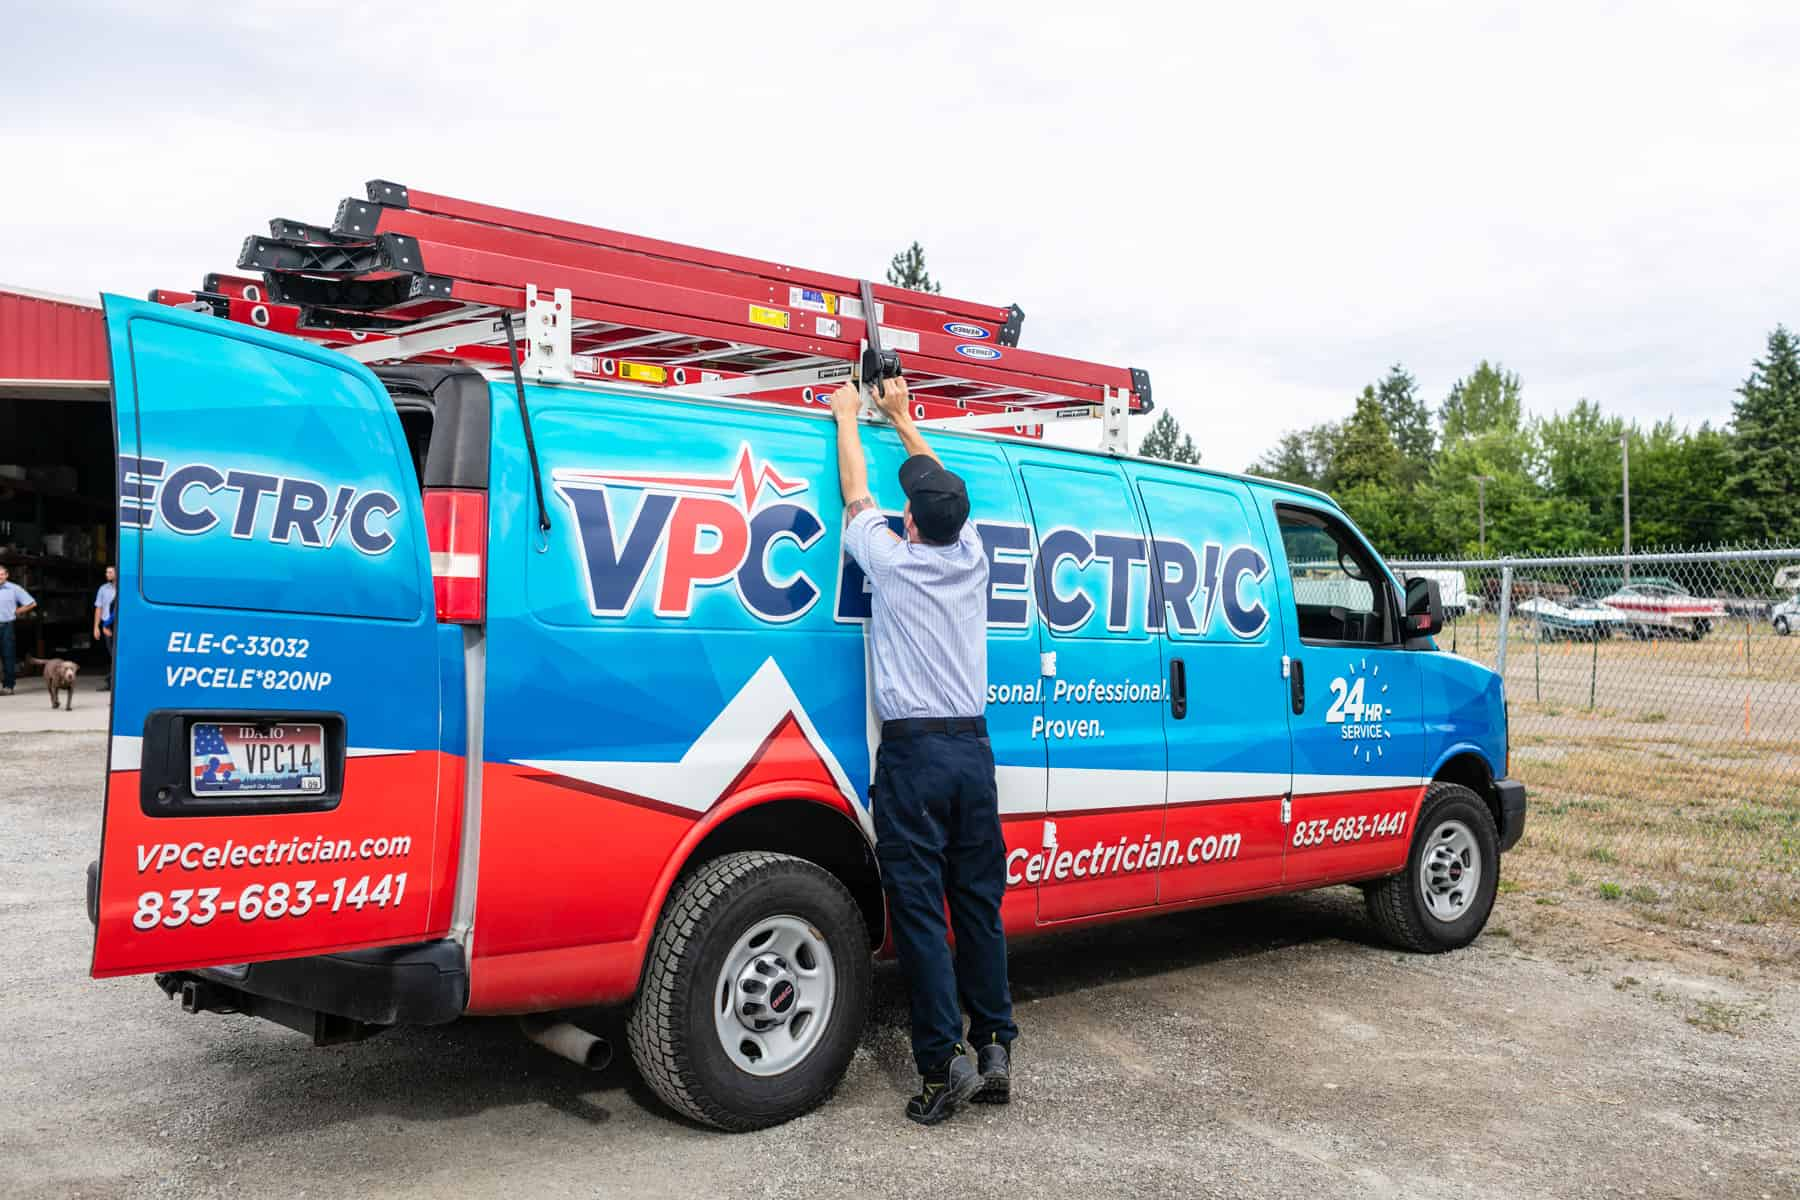 residential electrician loading a ladder onto a VPC electric service van